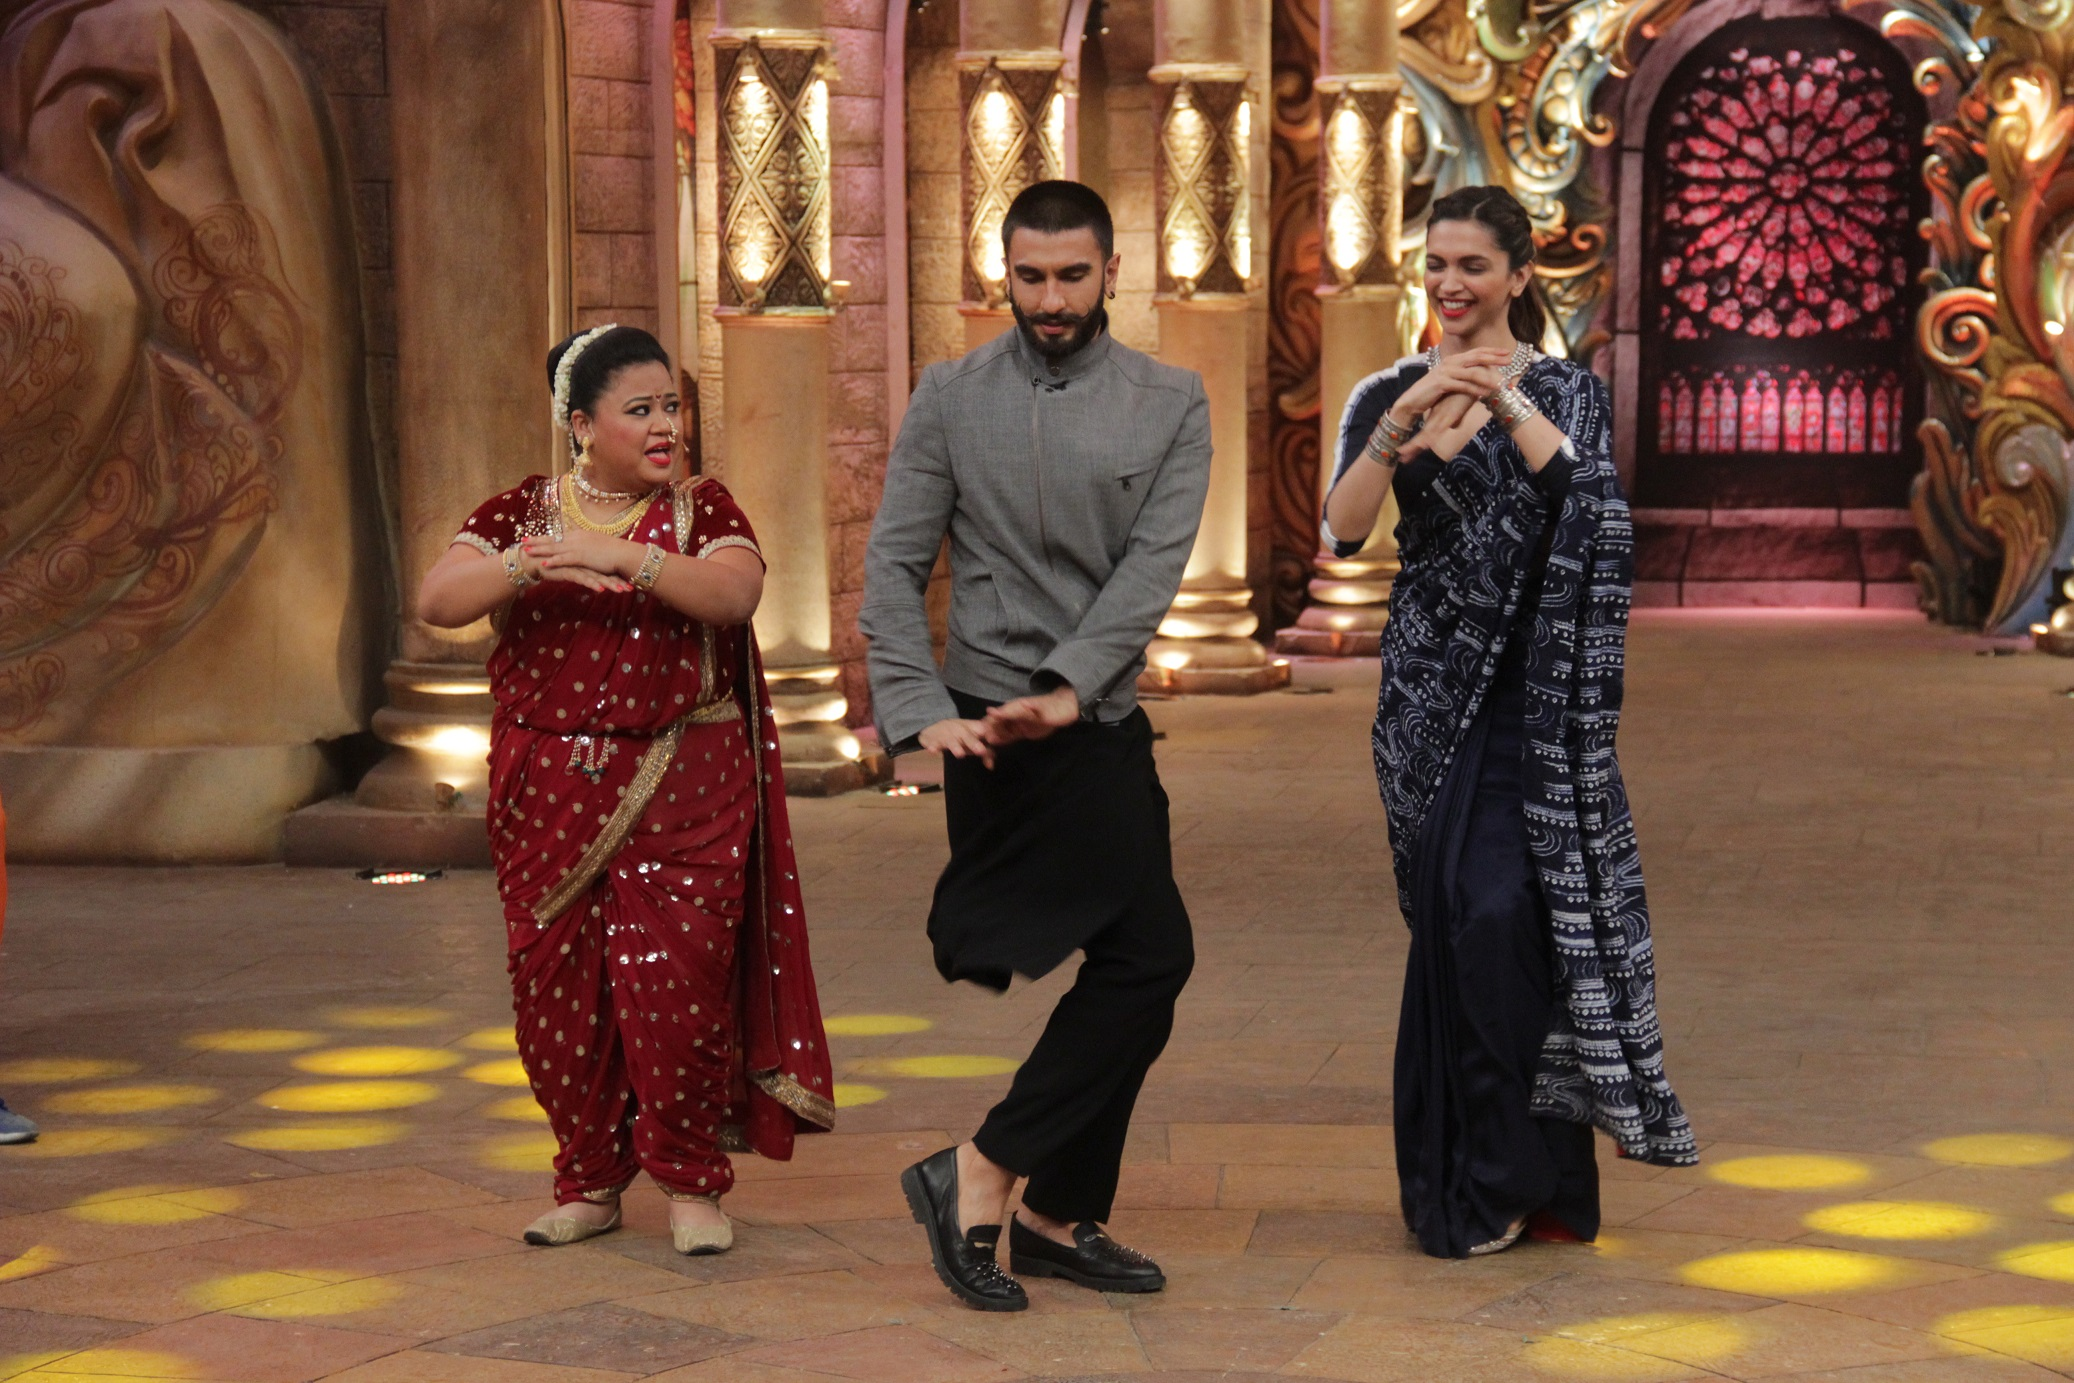 CNB Comedy Nights Bachao 19th December 2015 Episode Guests Ranveer Singh & Deepika Padukone